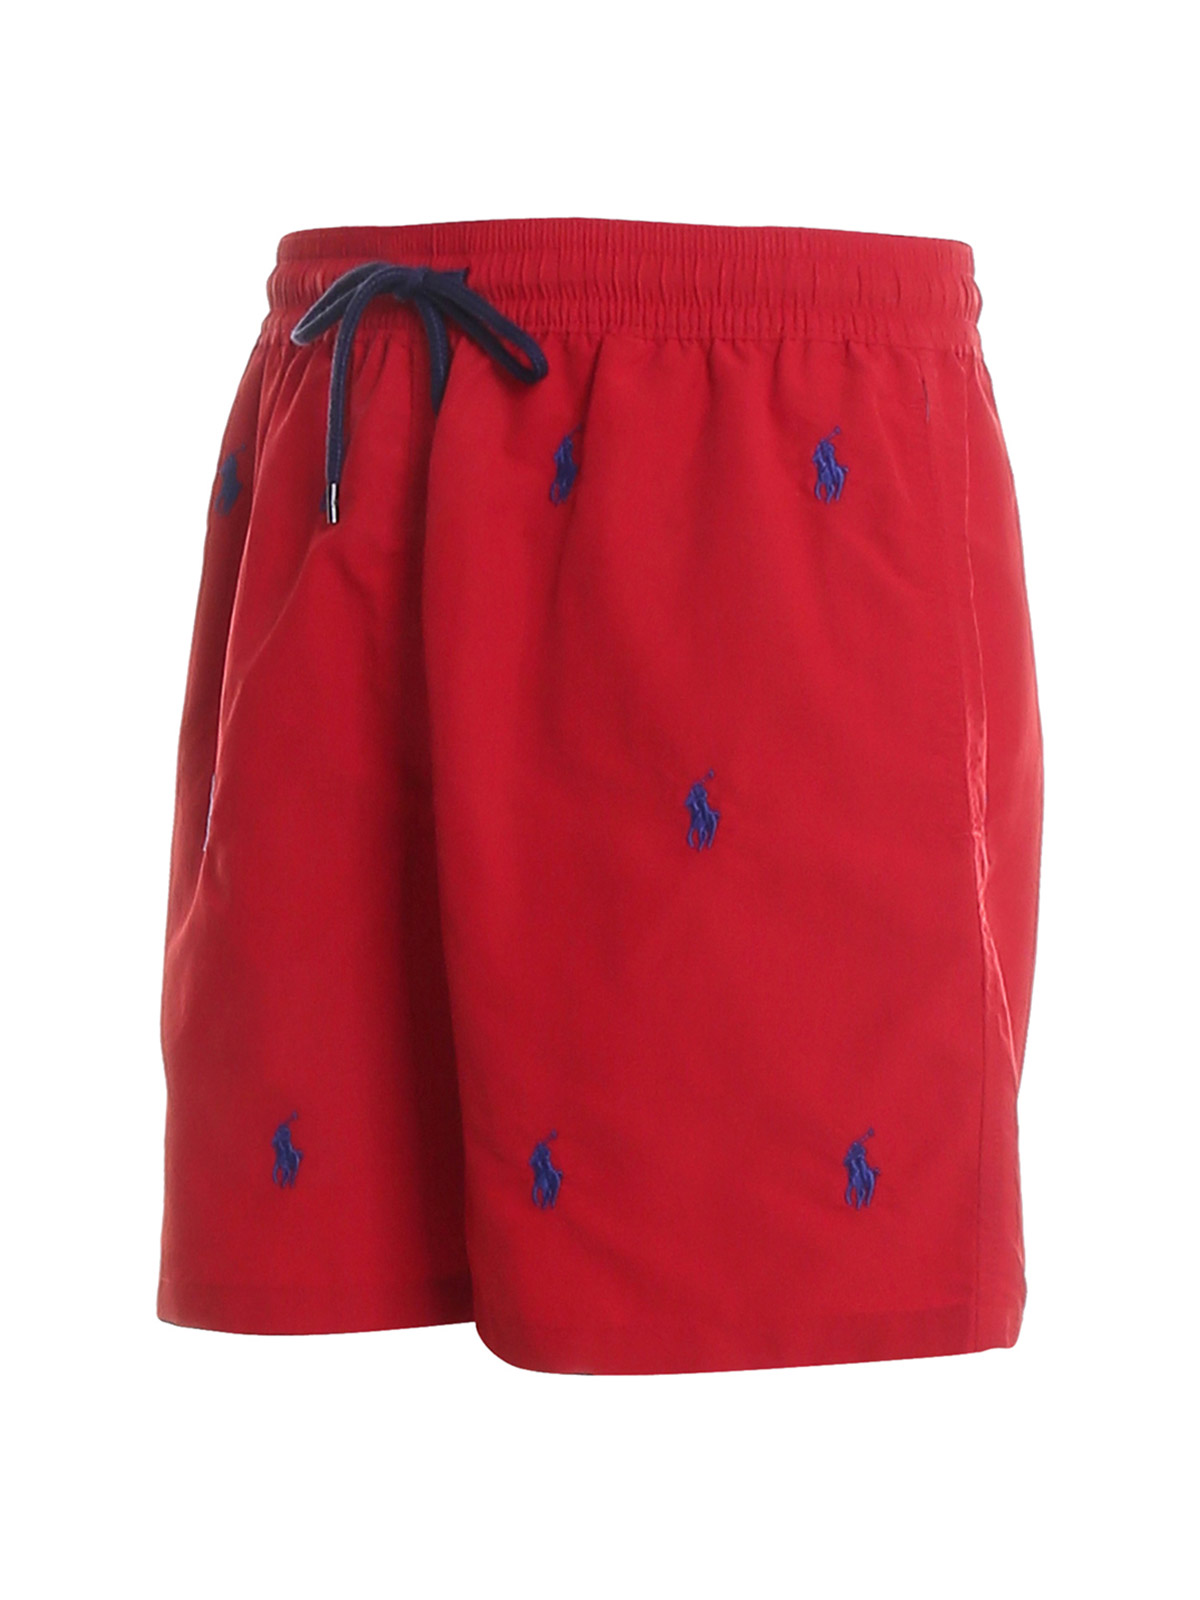 Picture of POLO RALPH LAUREN | Men's Embroidered Swim Shorts